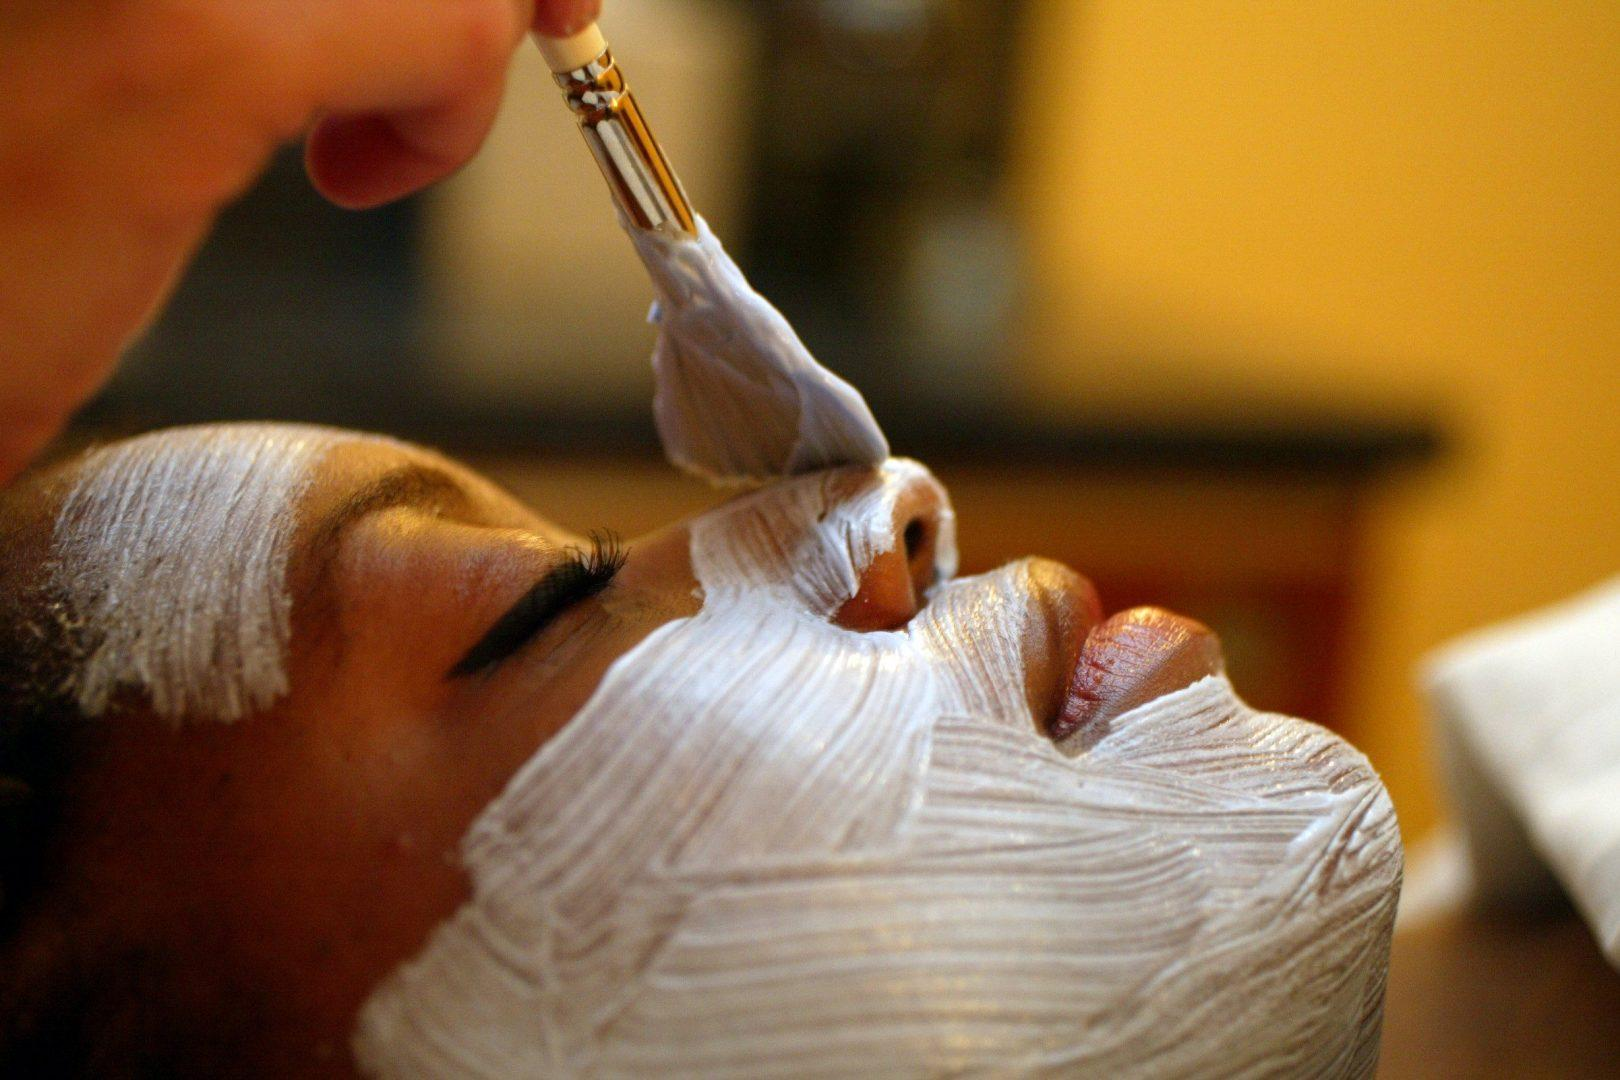 Our skin could get a beating from the winter so with the right skin products, we can replenish our dry skin. (Michael Kitada/Orange County Register/MCT)